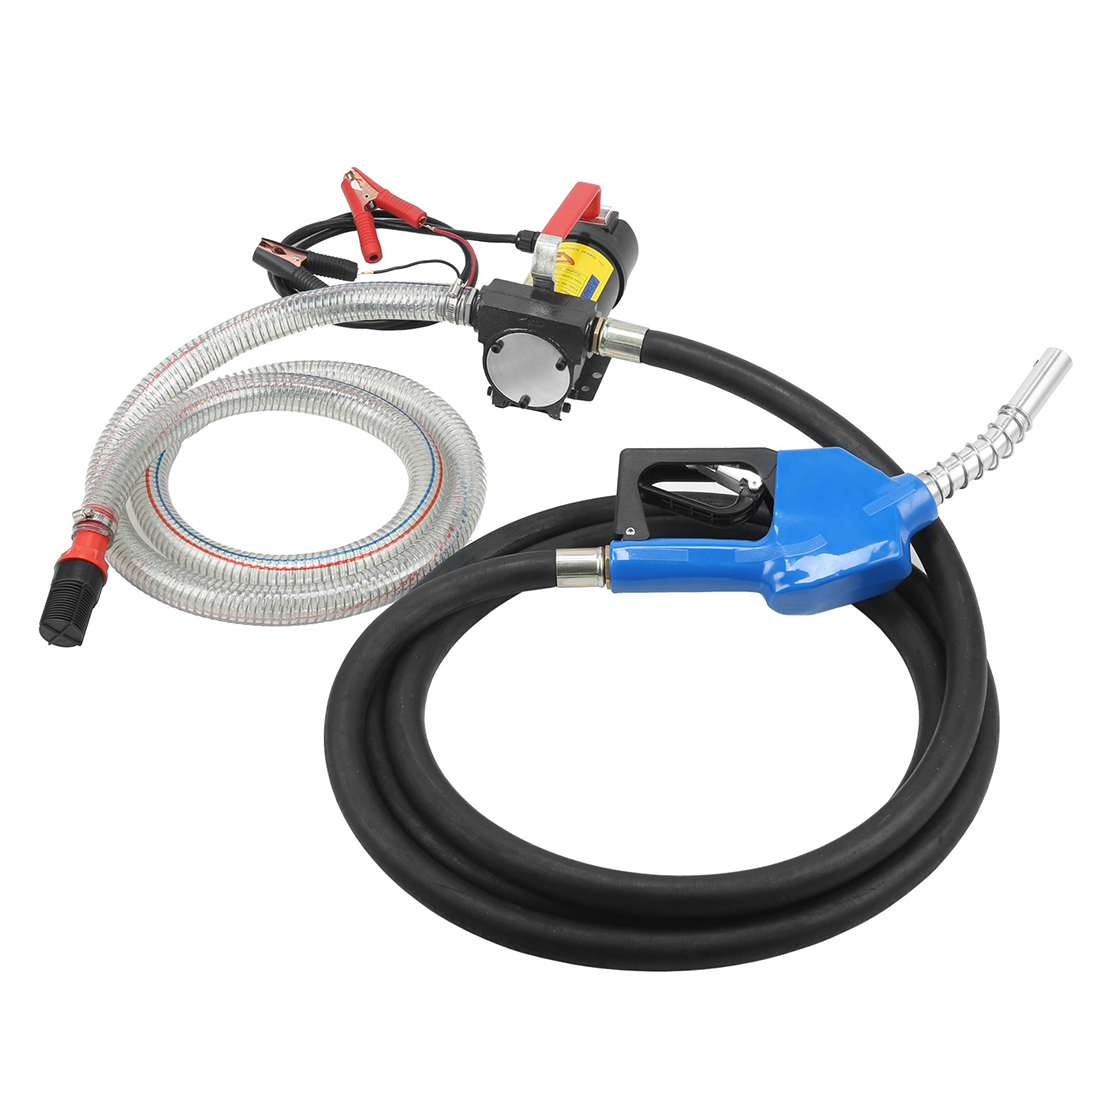 AUTO -Portable 12V crude oil engine Fluid Extractor Electric Transfer Pump Car Fuel Auto Speed цена